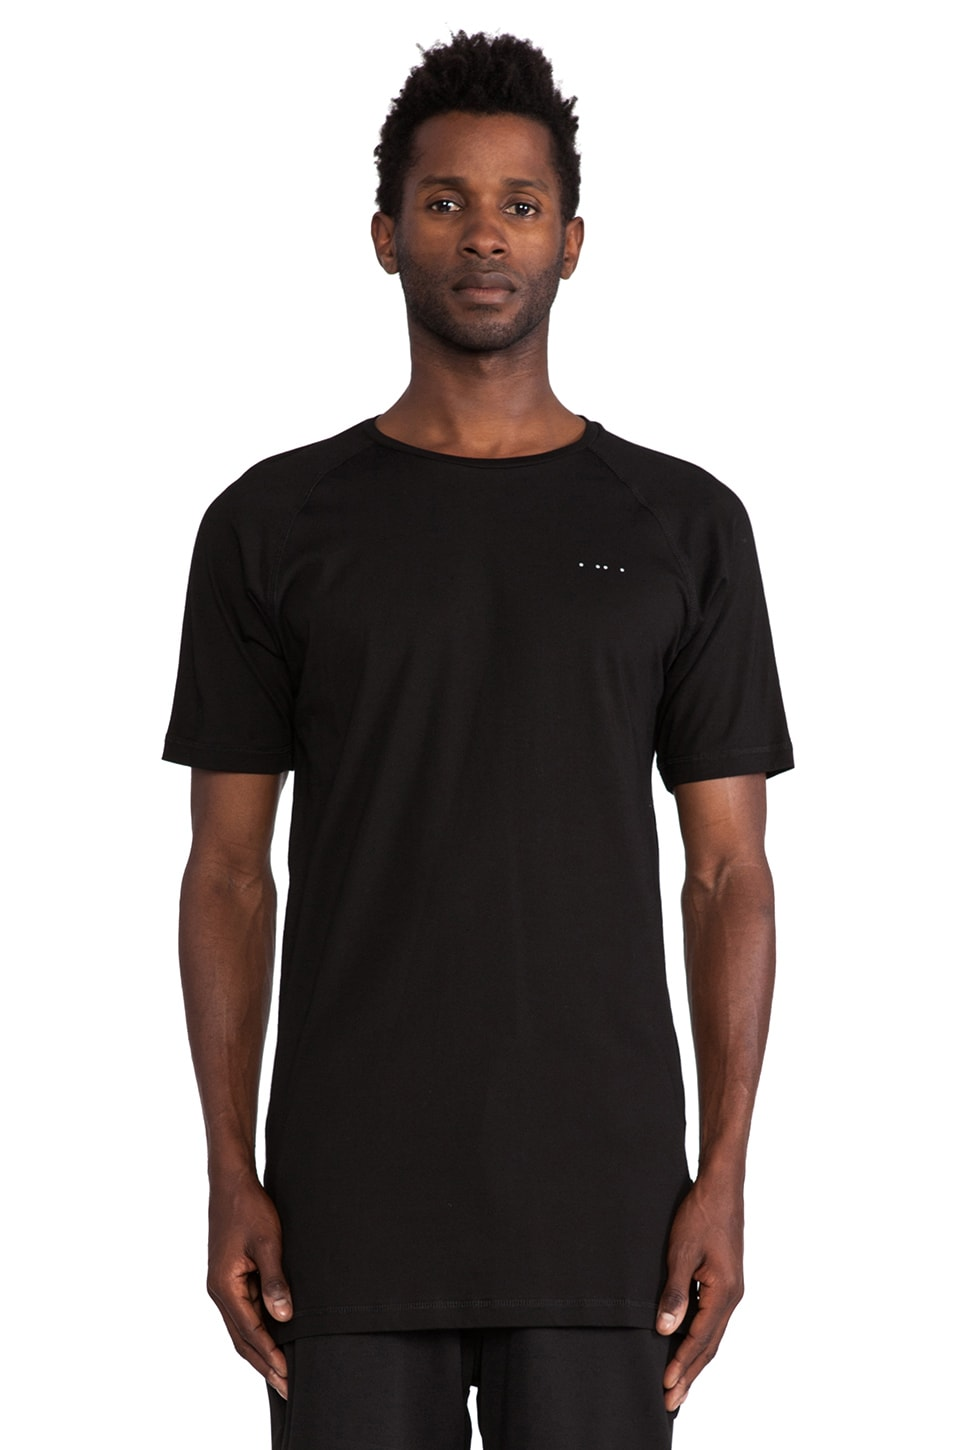 Publish MONO Penstall Tee in Black